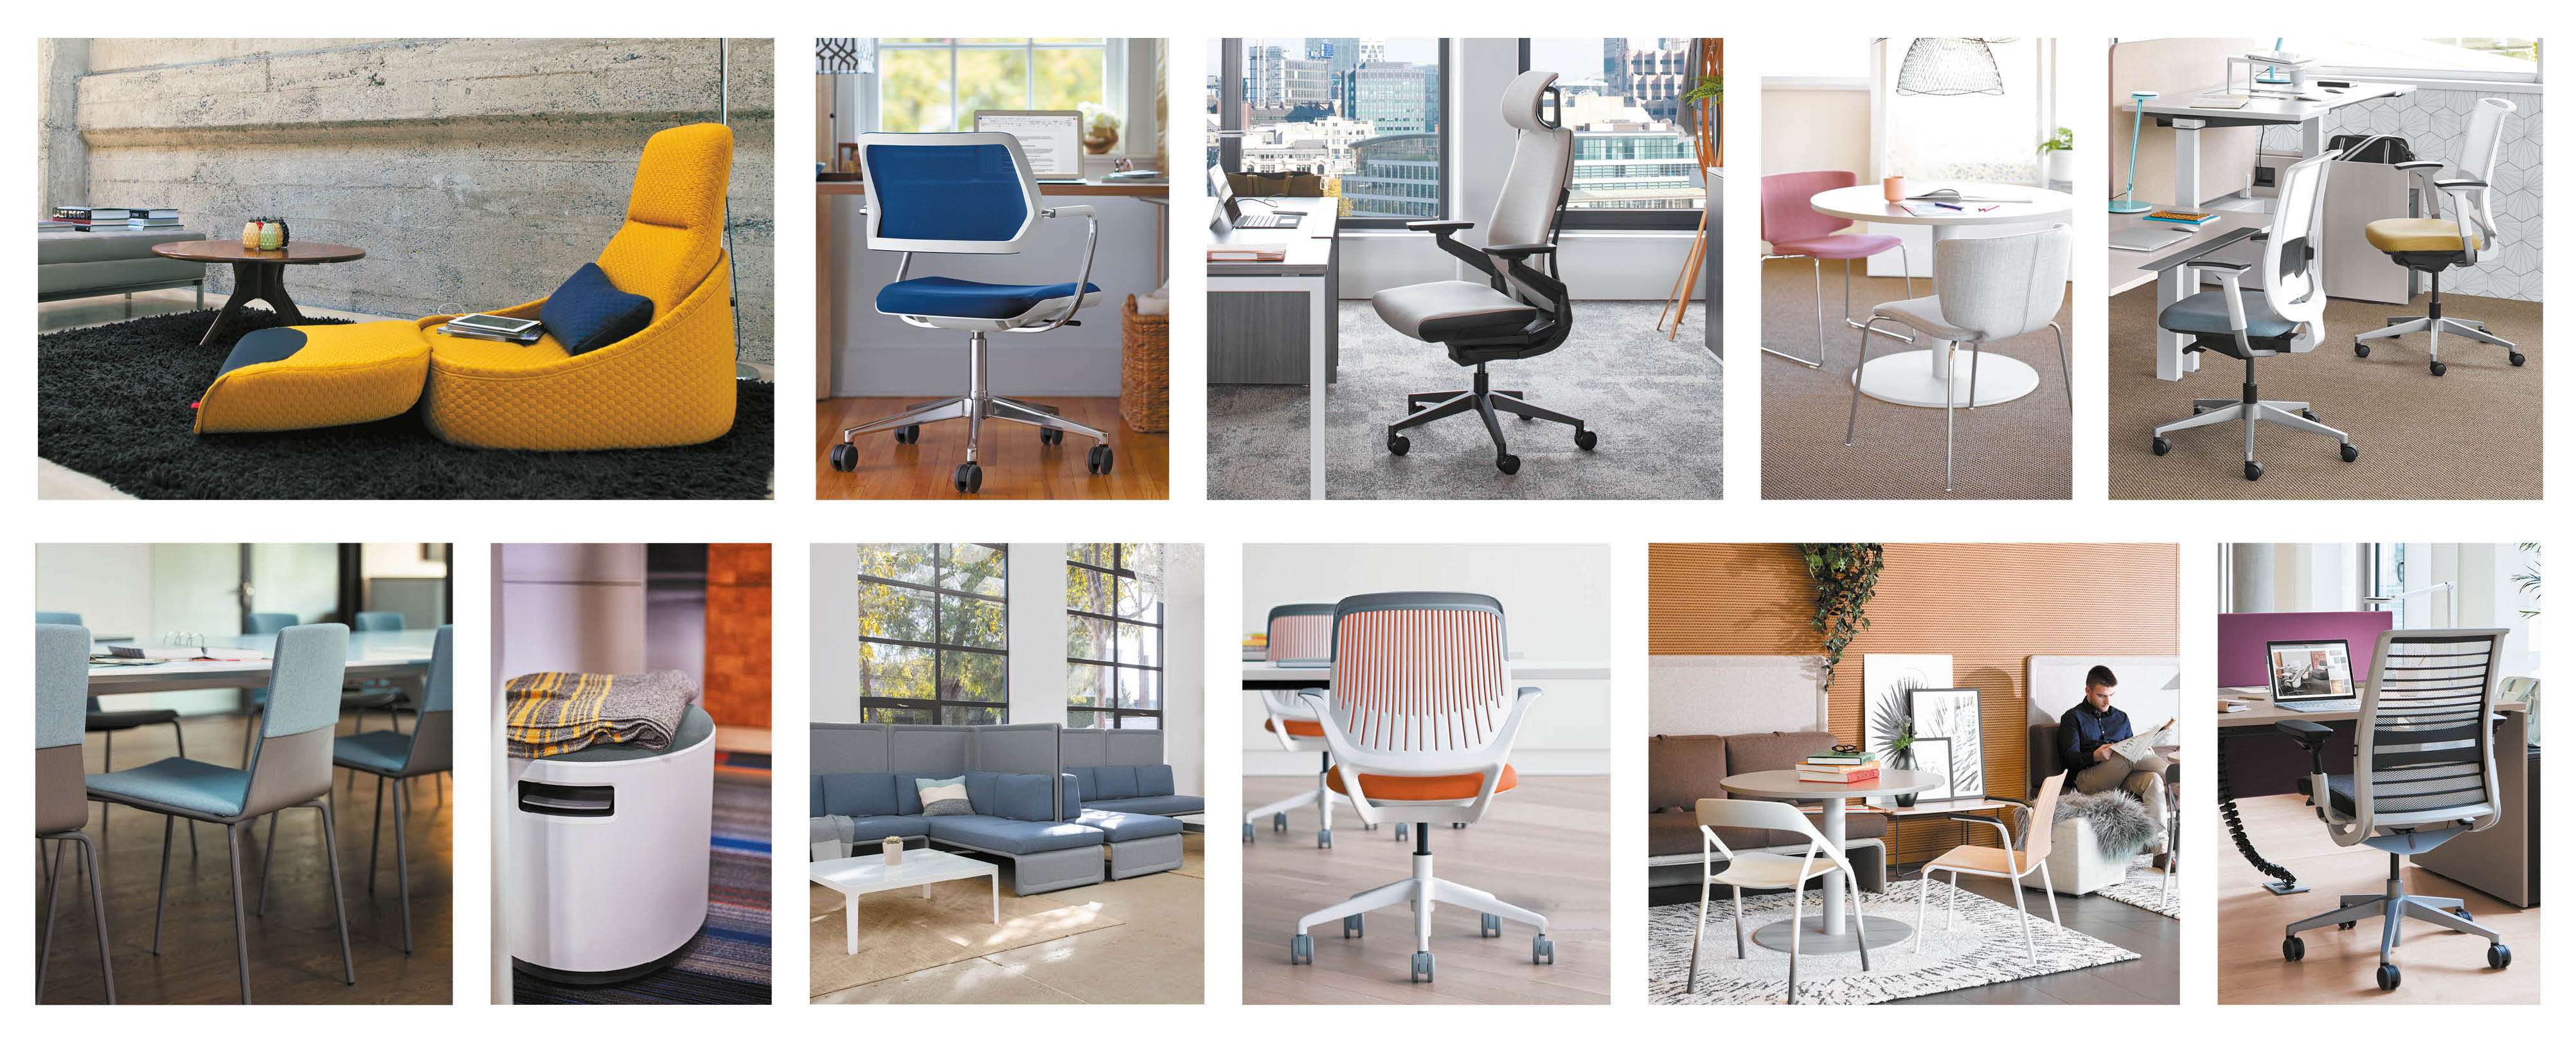 back support office chairs south africa co chair lift accident modern desk task seating steelcase the difference